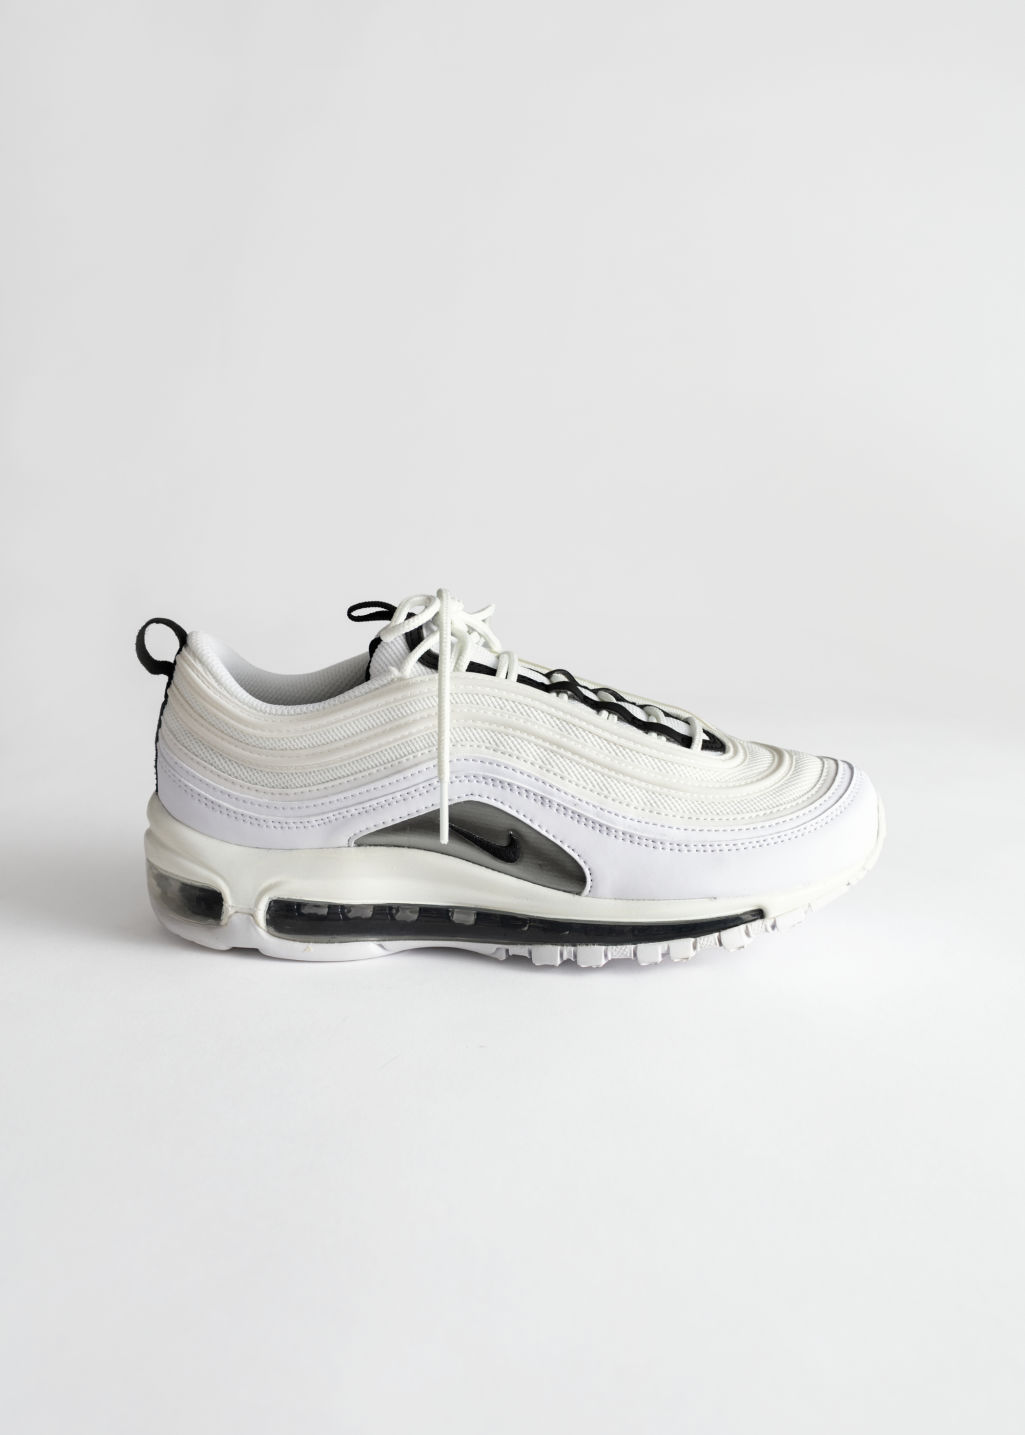 Nike Air max 97 PRM White Nike & Other Stories